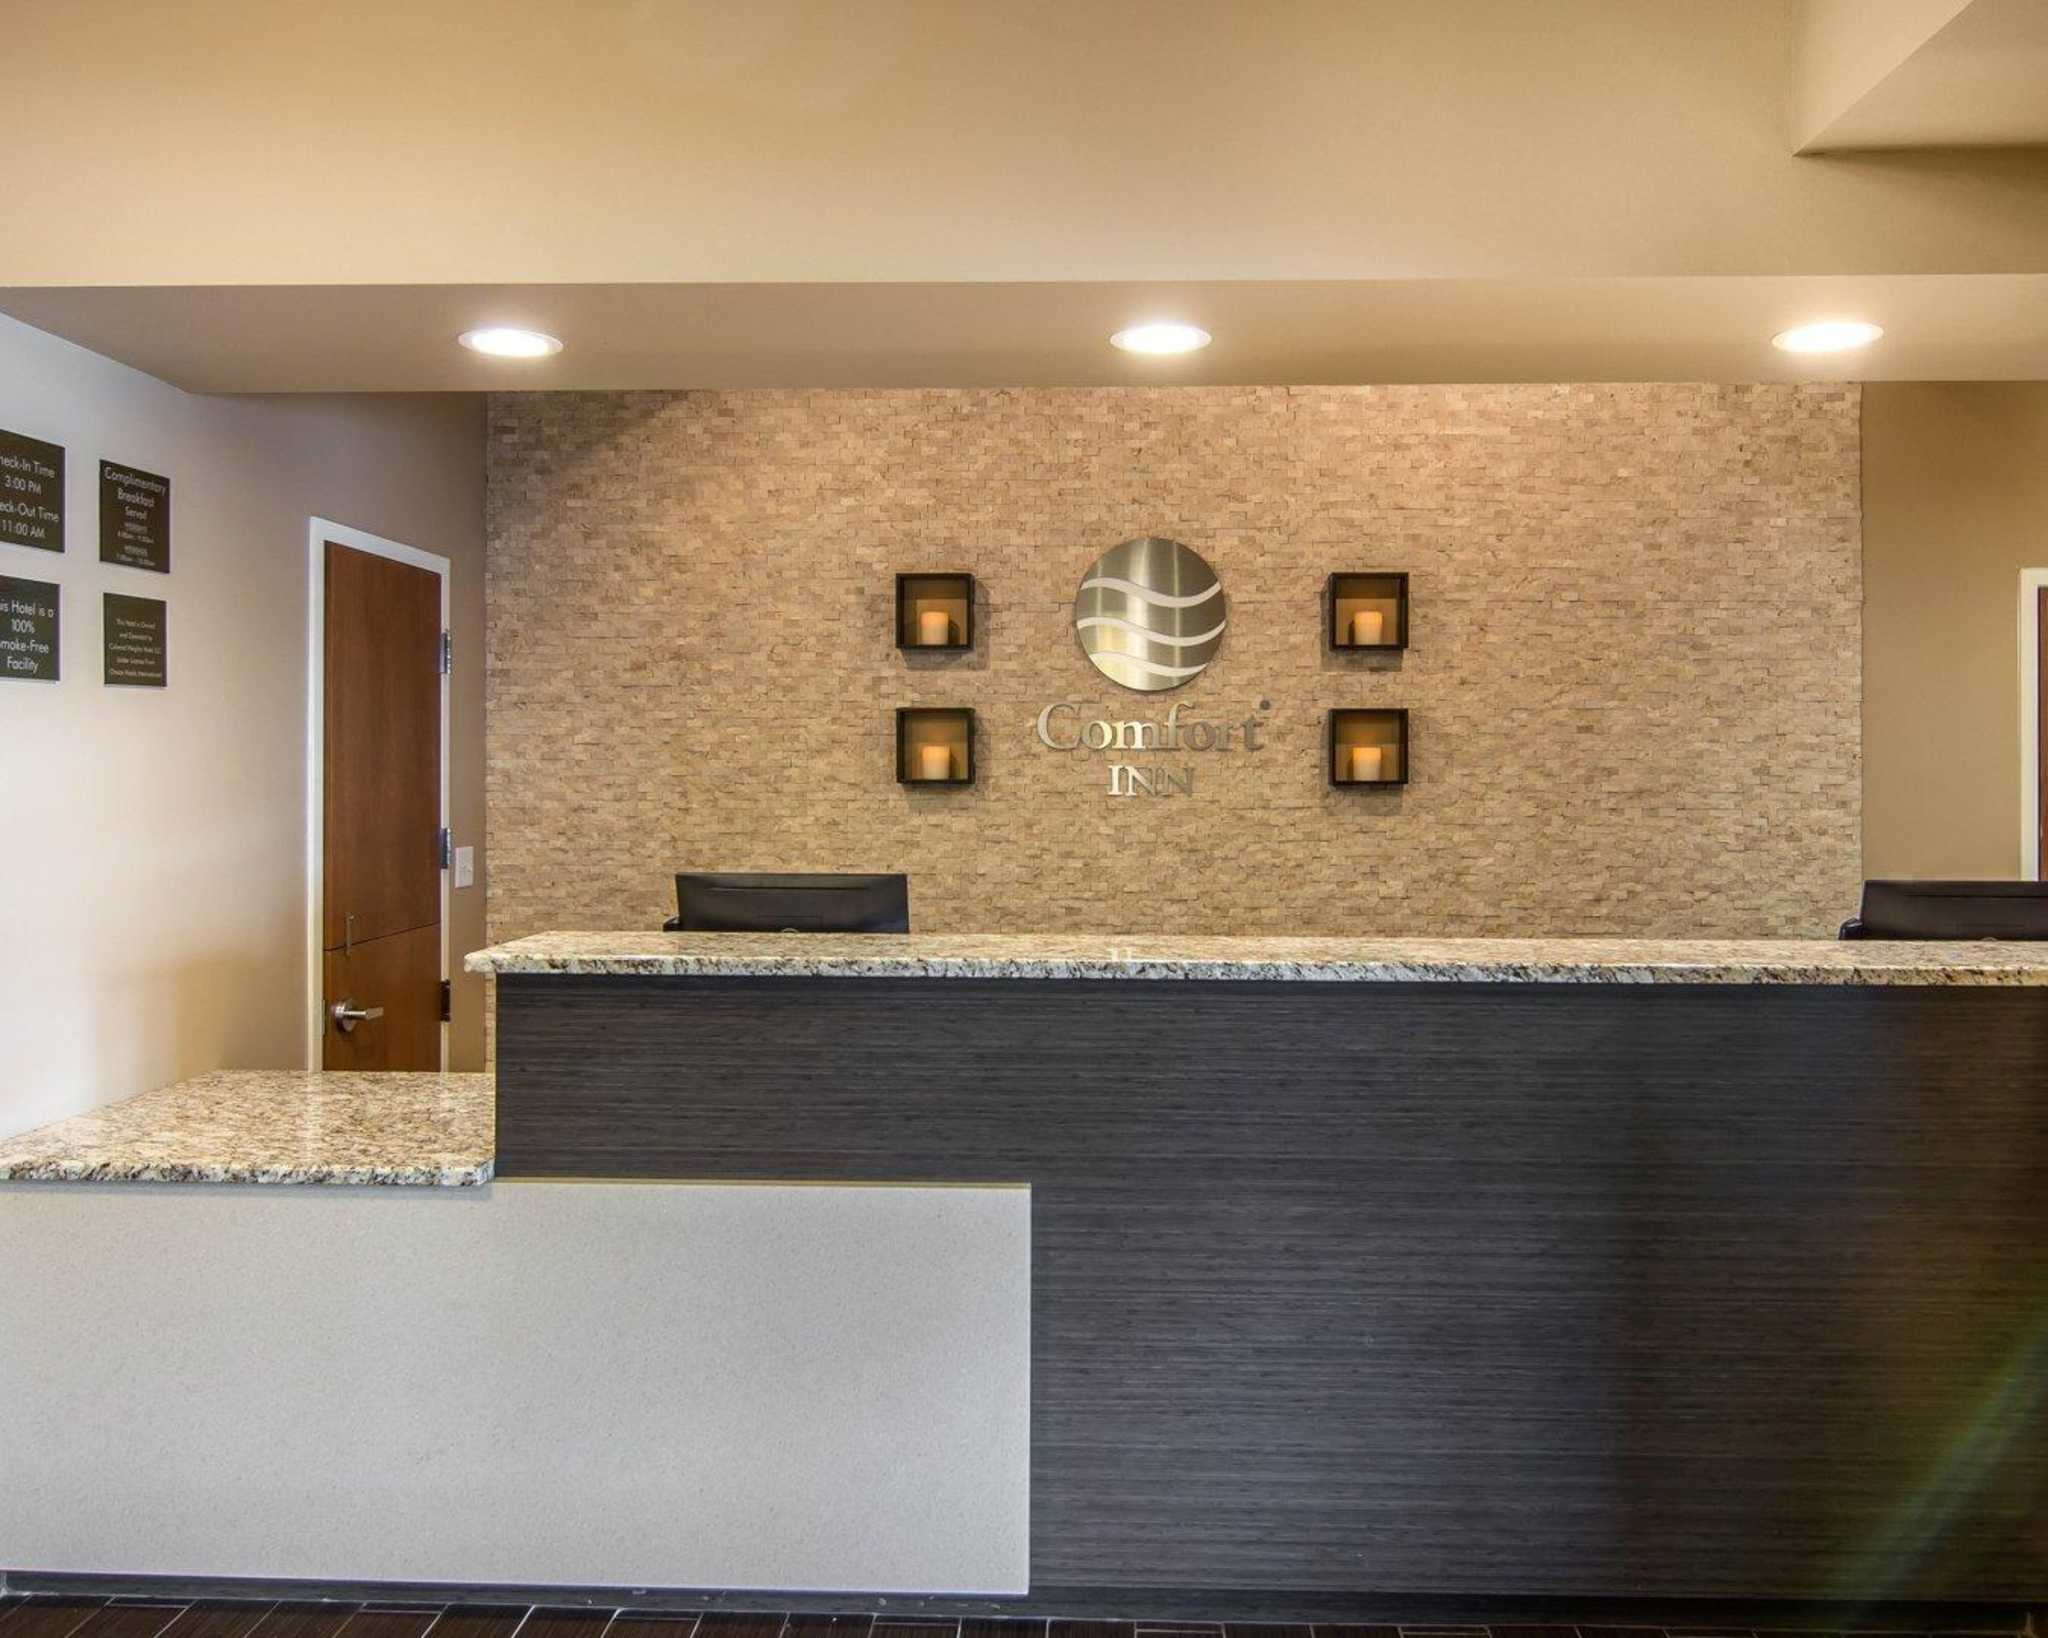 Comfort Inn South Chesterfield - Colonial Heights image 14